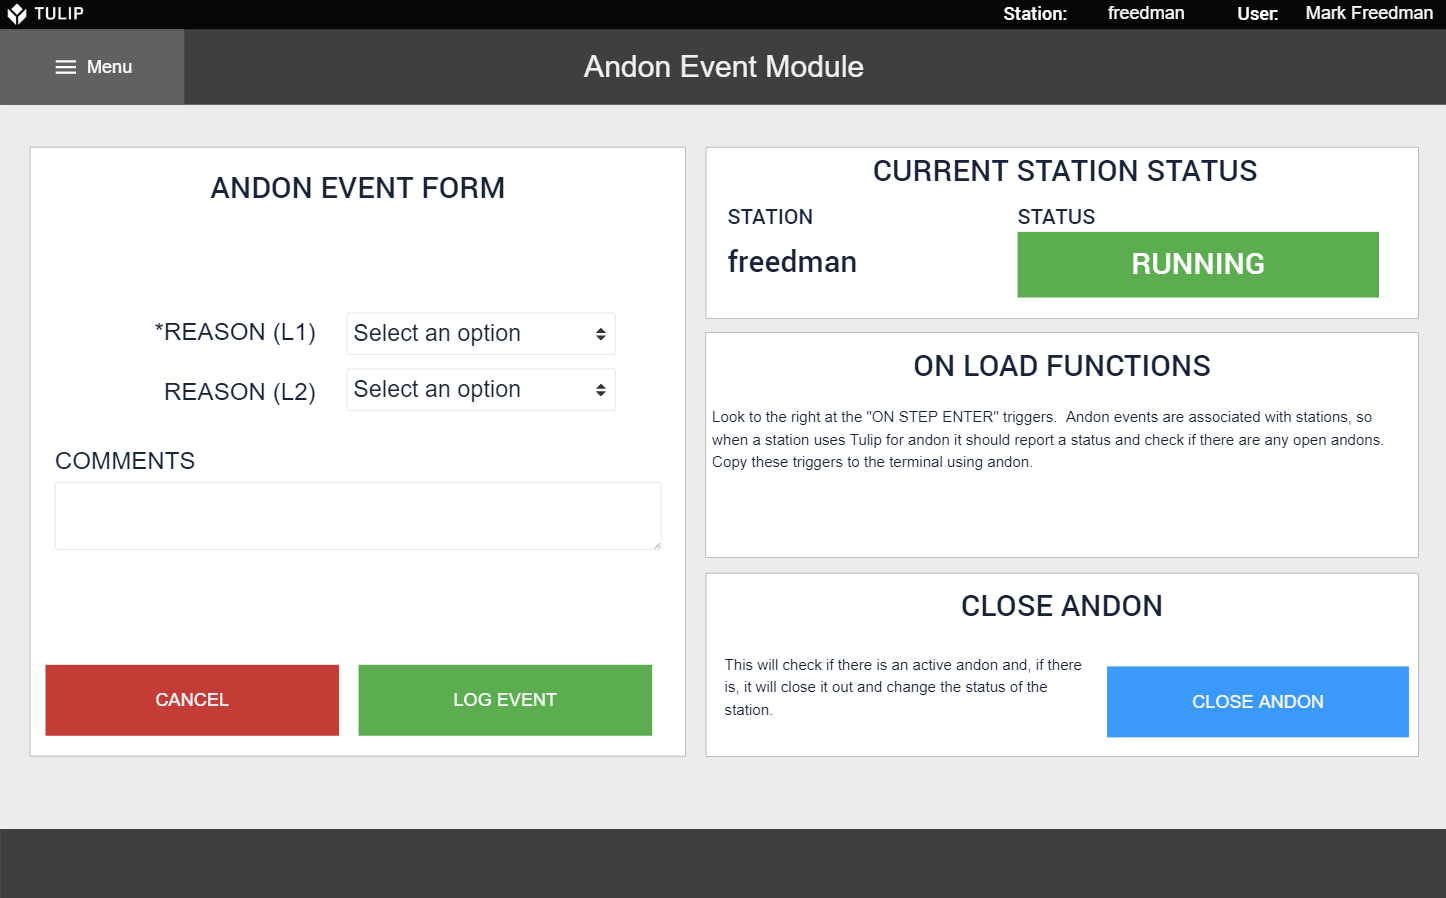 Image of Andon Event Module app